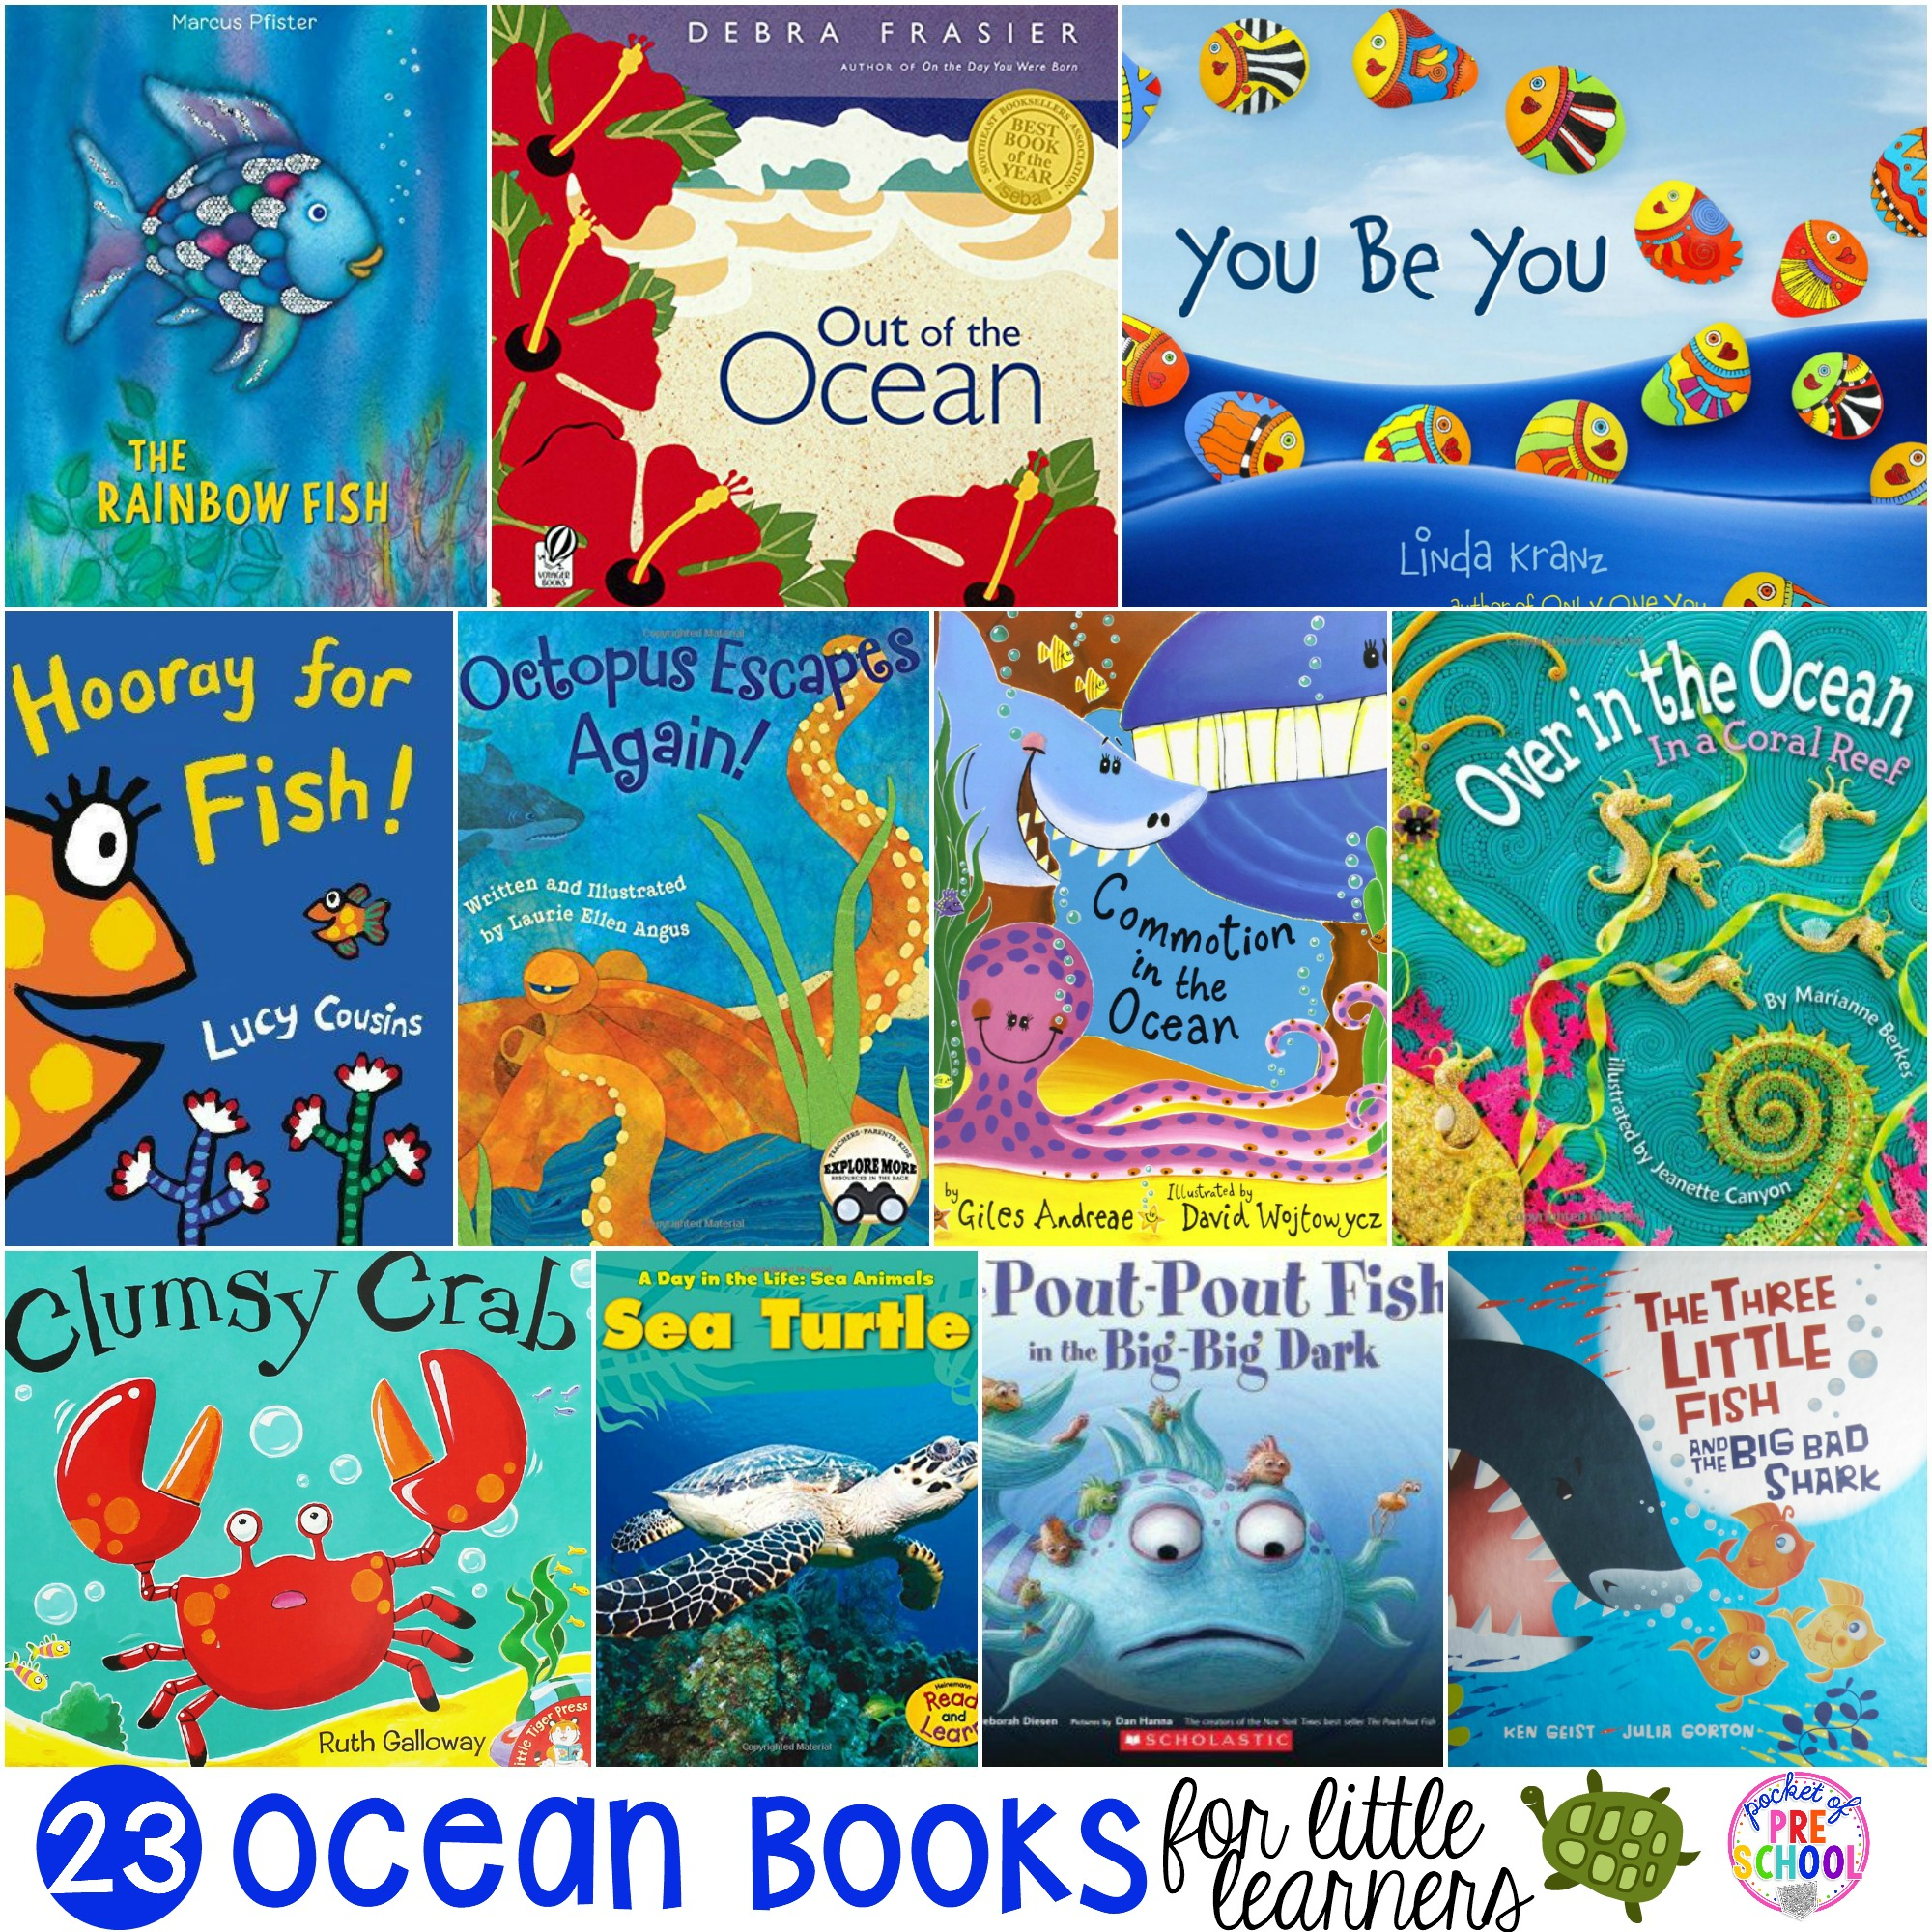 HUGE ocean book list my preschool & pre-k students love and we love reading at circle time. #oceanbooks #preschool #prek #oceantheme